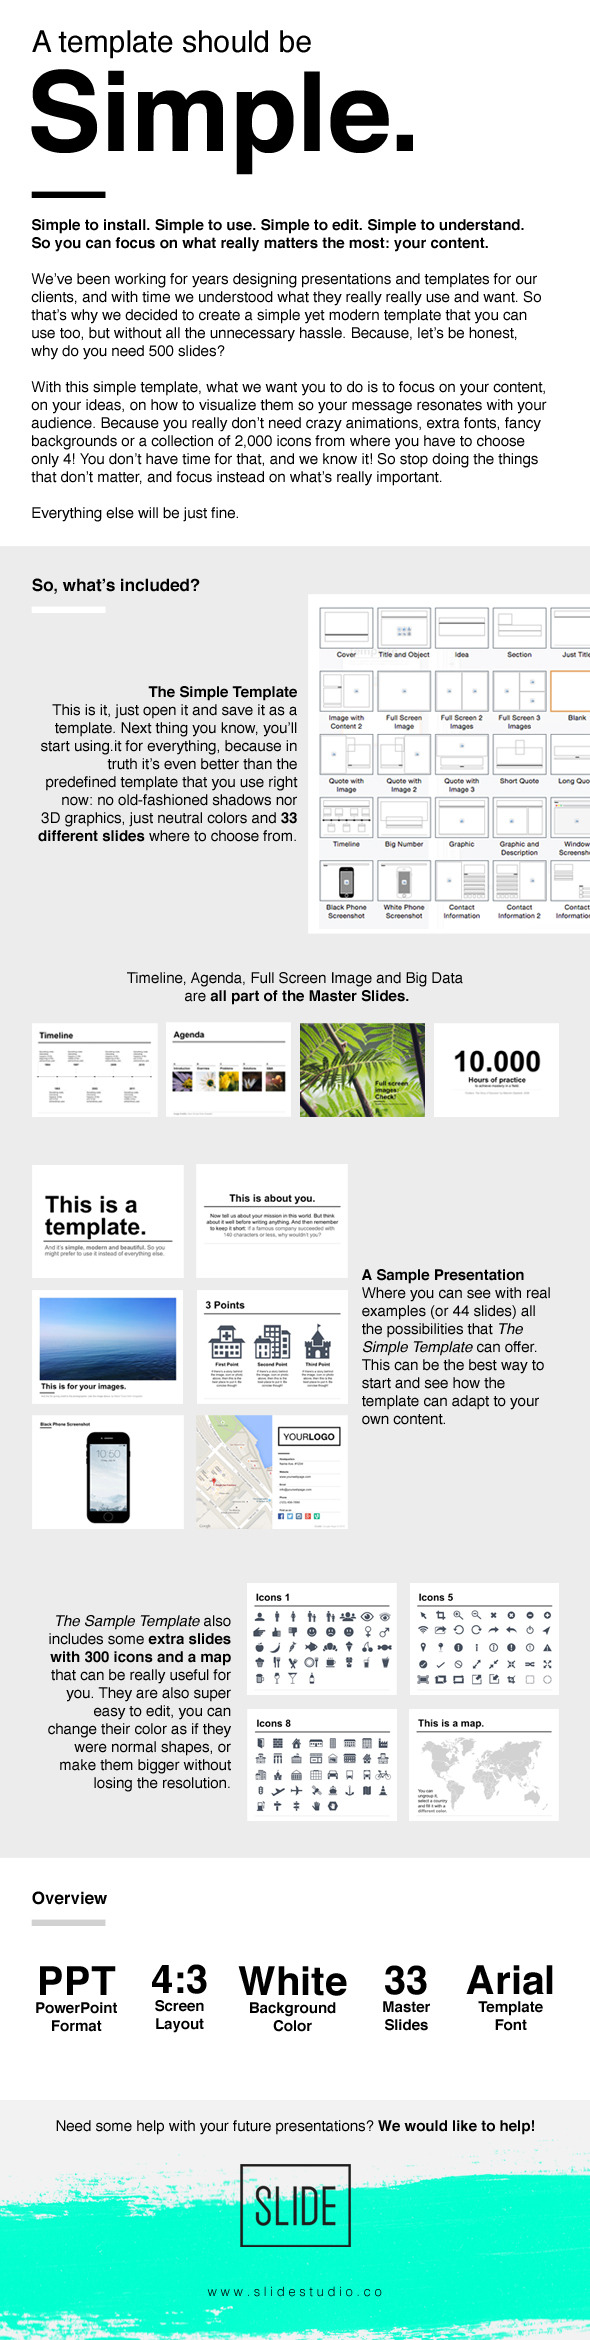 The Simple Template (PowerPoint Templates)